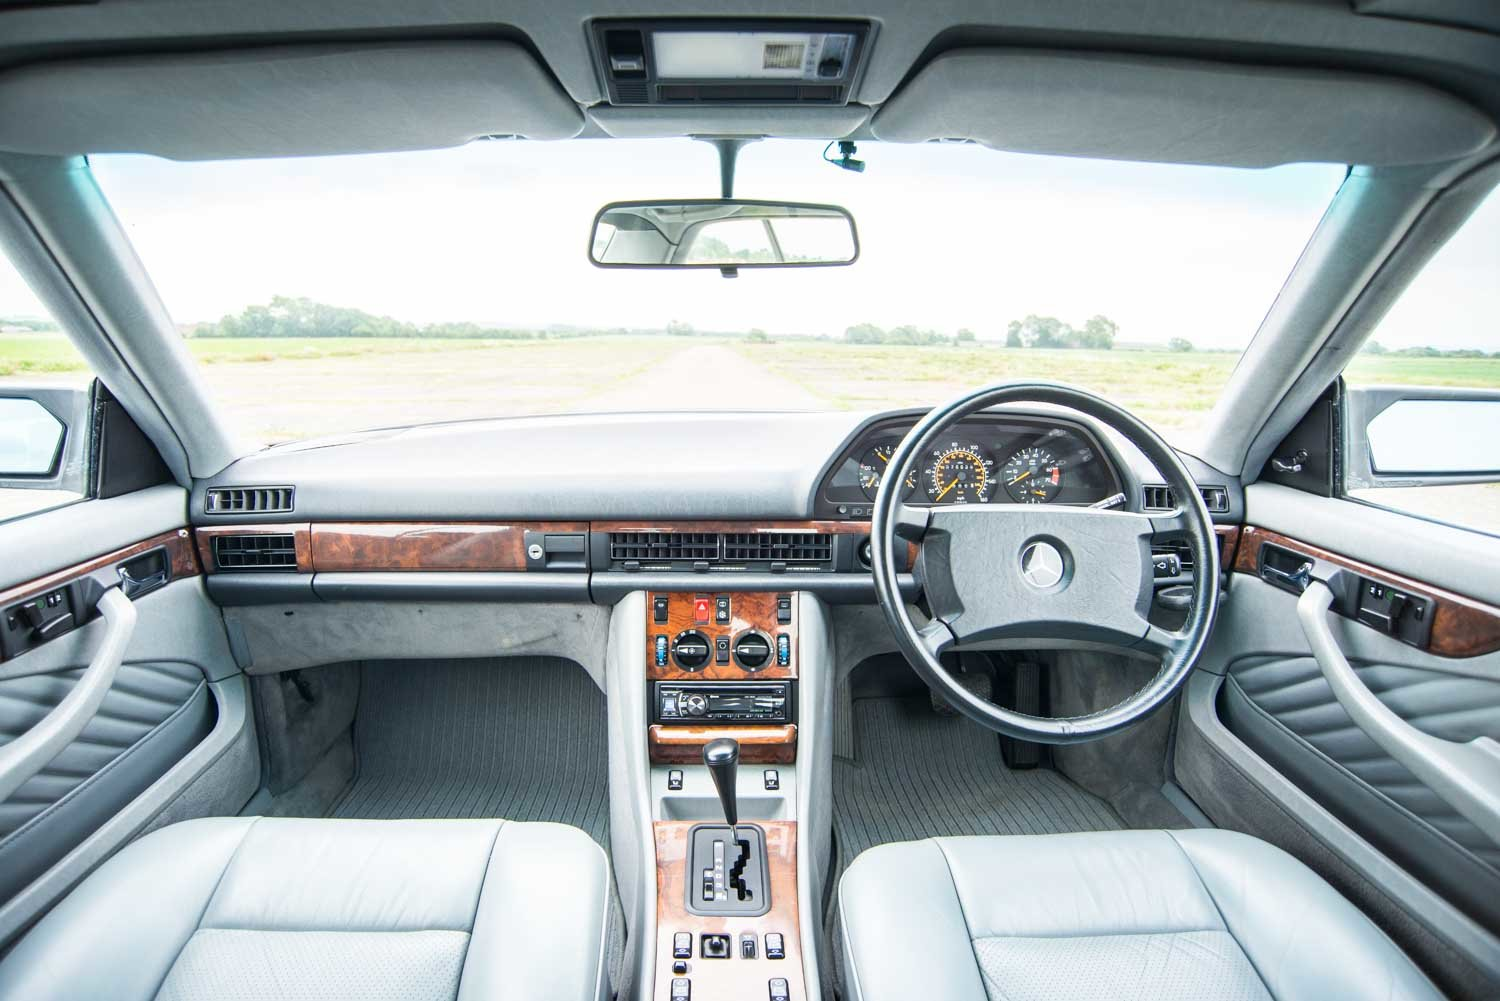 1989 Mercedes-Benz C126 420SEC - 76k Miles - Immaculate For Sale (picture 5 of 6)